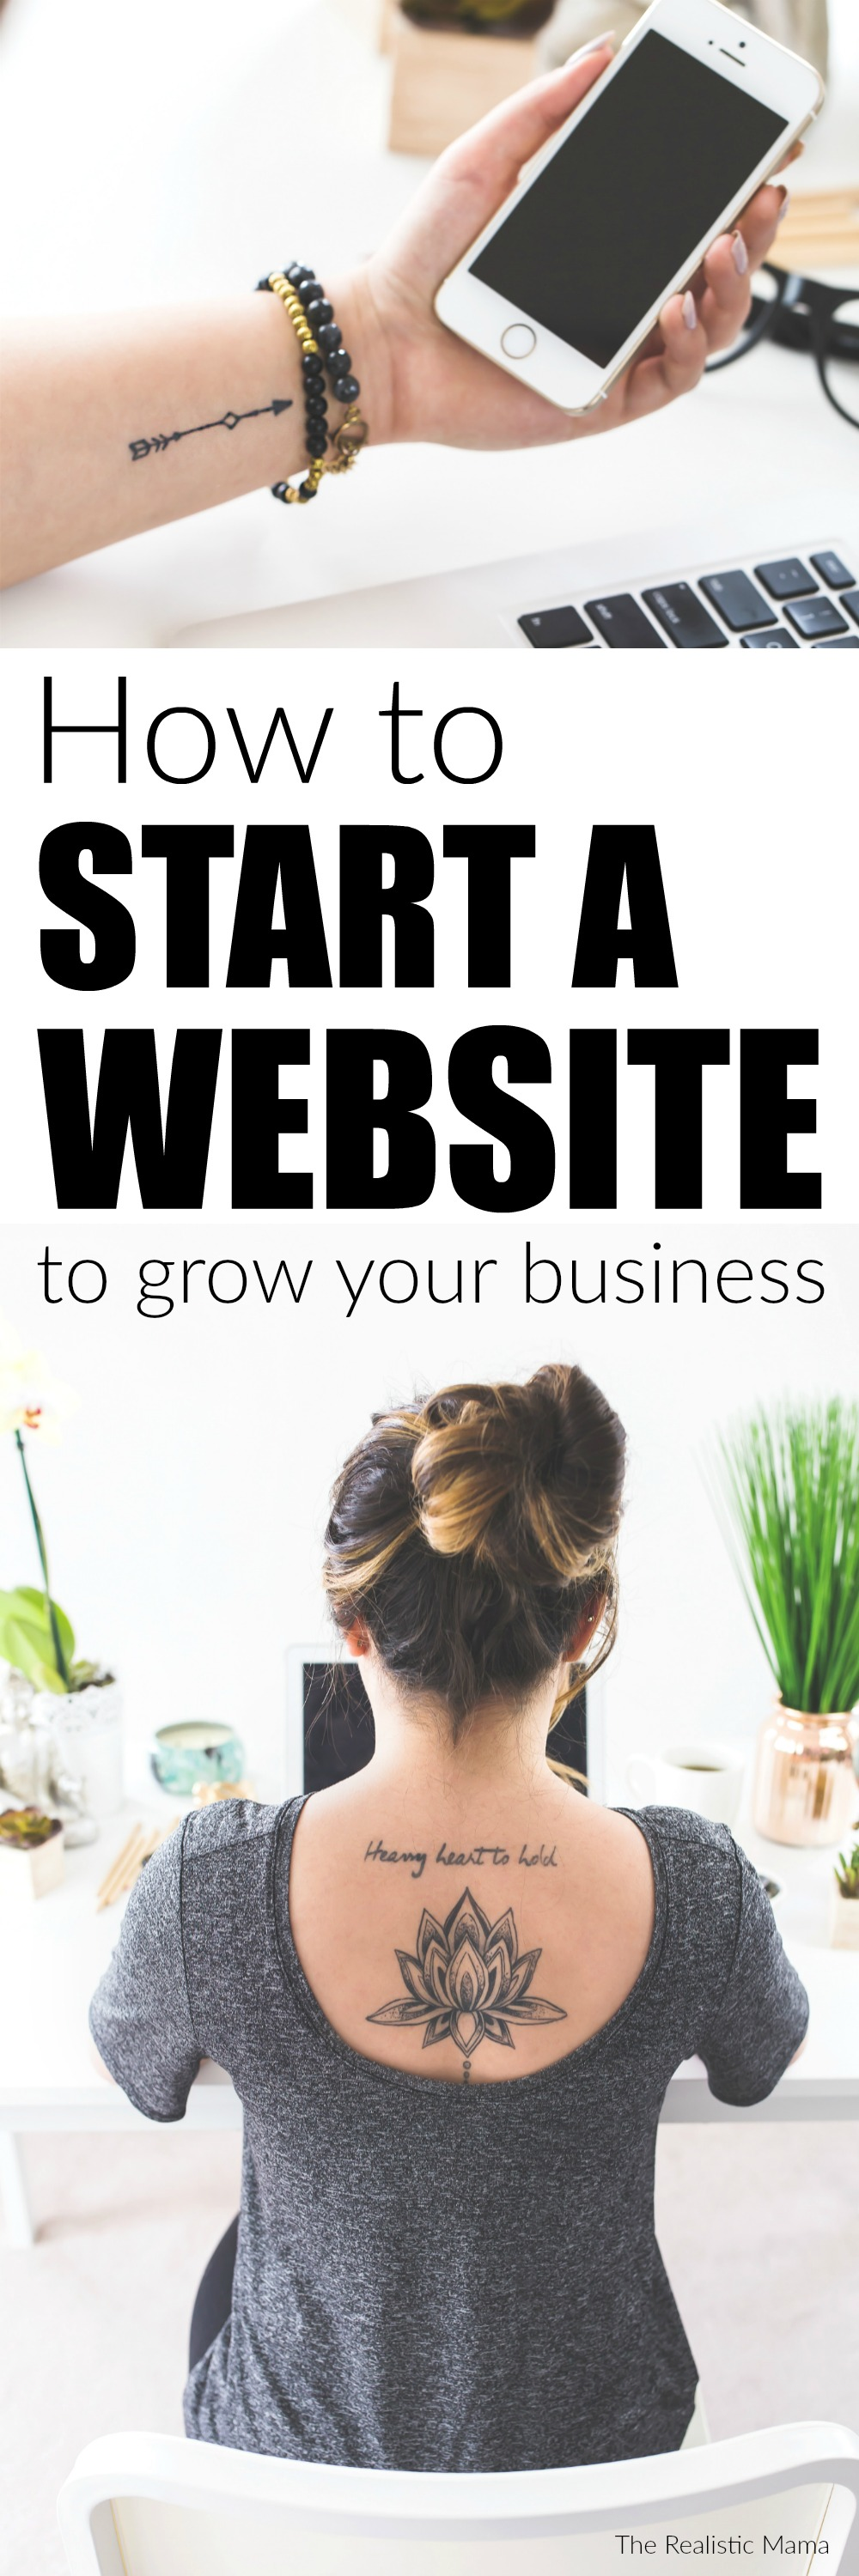 How to start a website to grow your business fast!